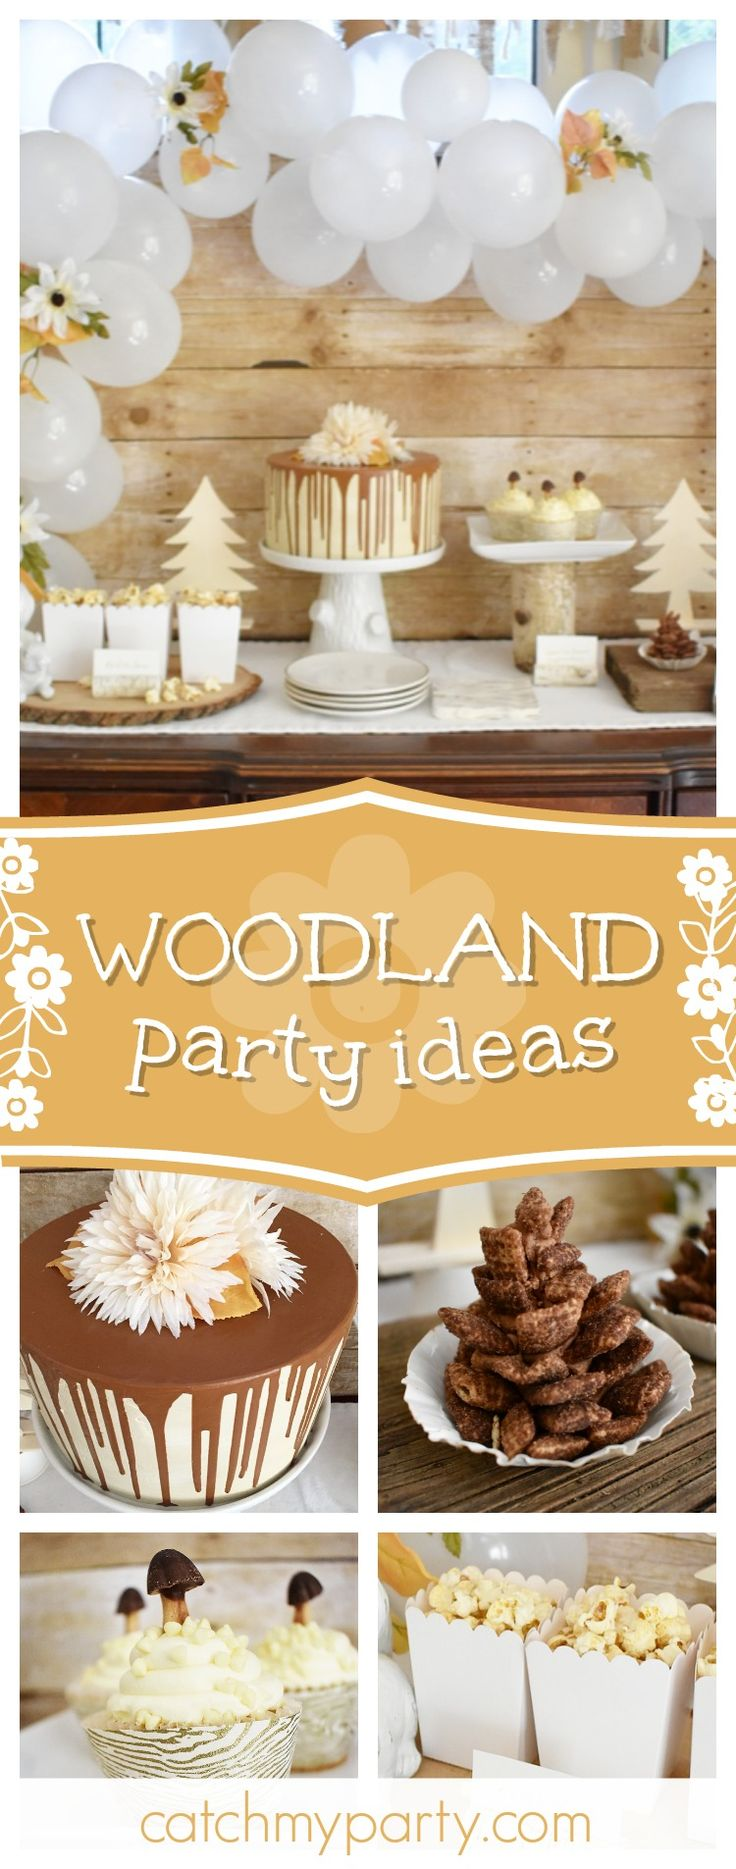 Take a look at this gorgeous Woodland